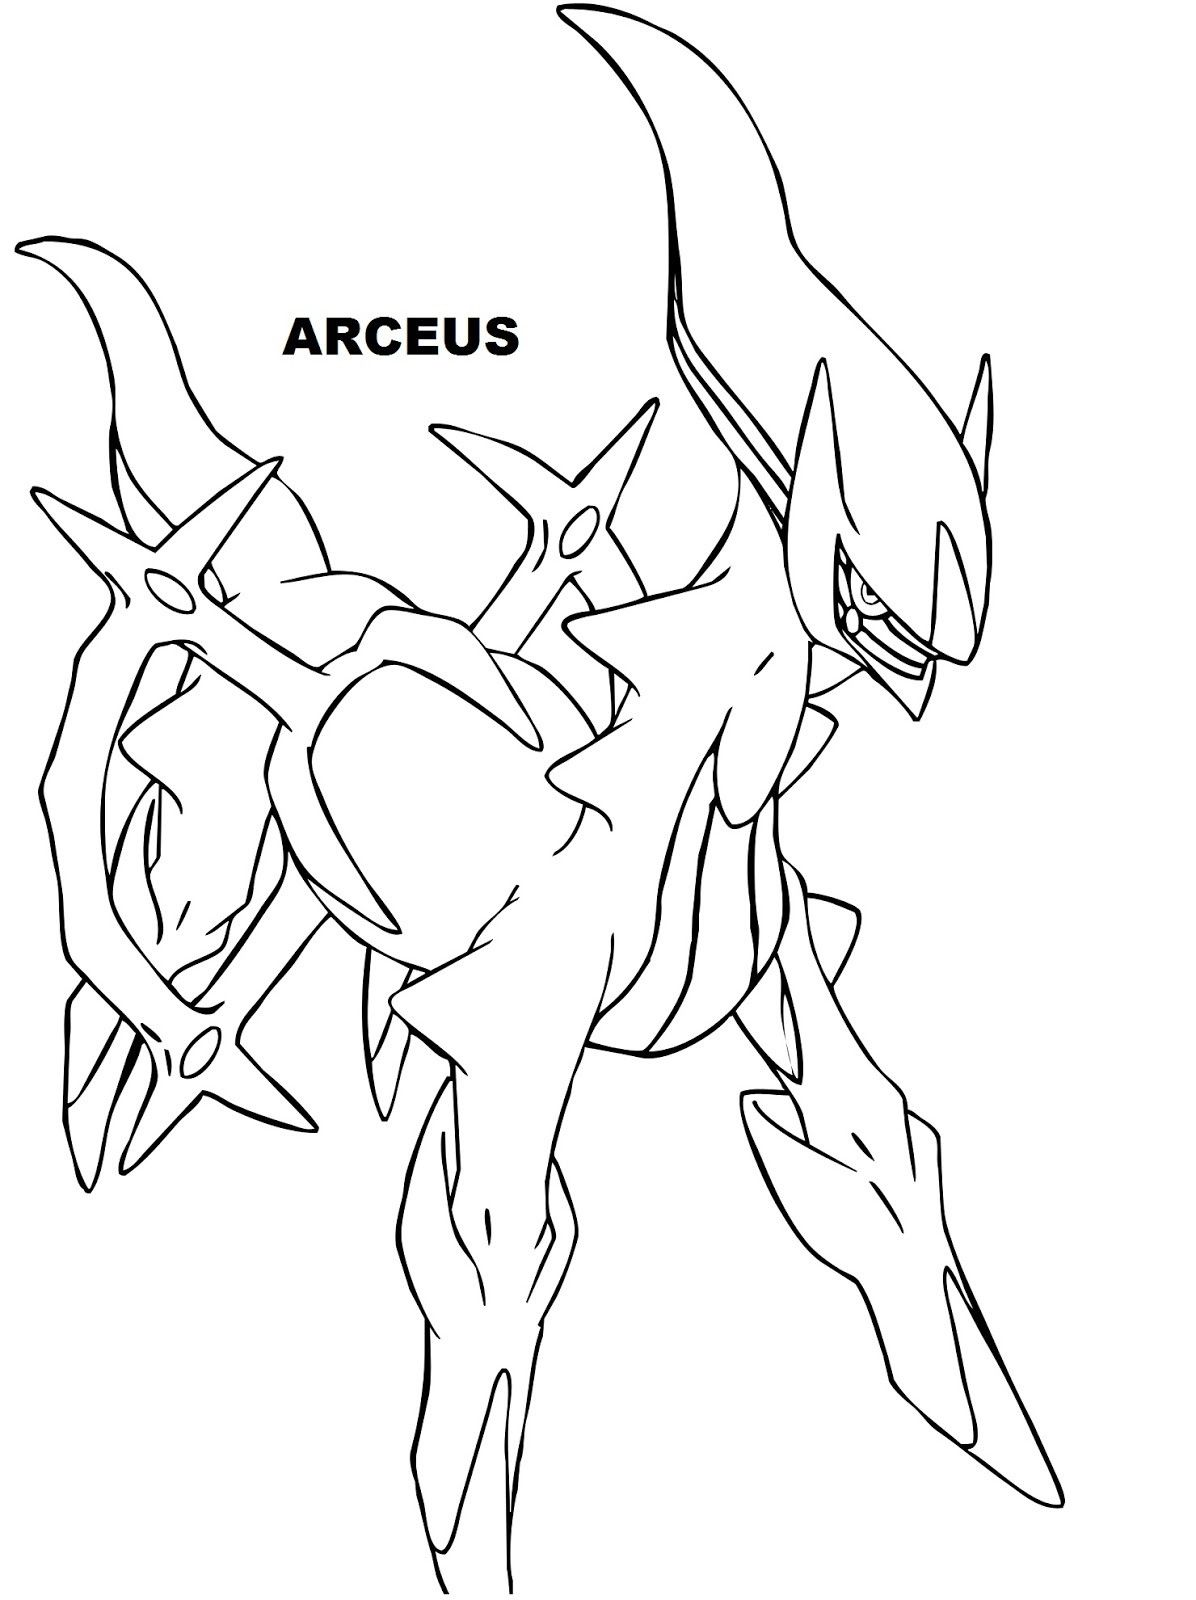 Zekrom Pokemon Coloring Page Youngandtae Com In 2020 Pokemon Coloring Pages Coloring Pages For Kids Pokemon Coloring